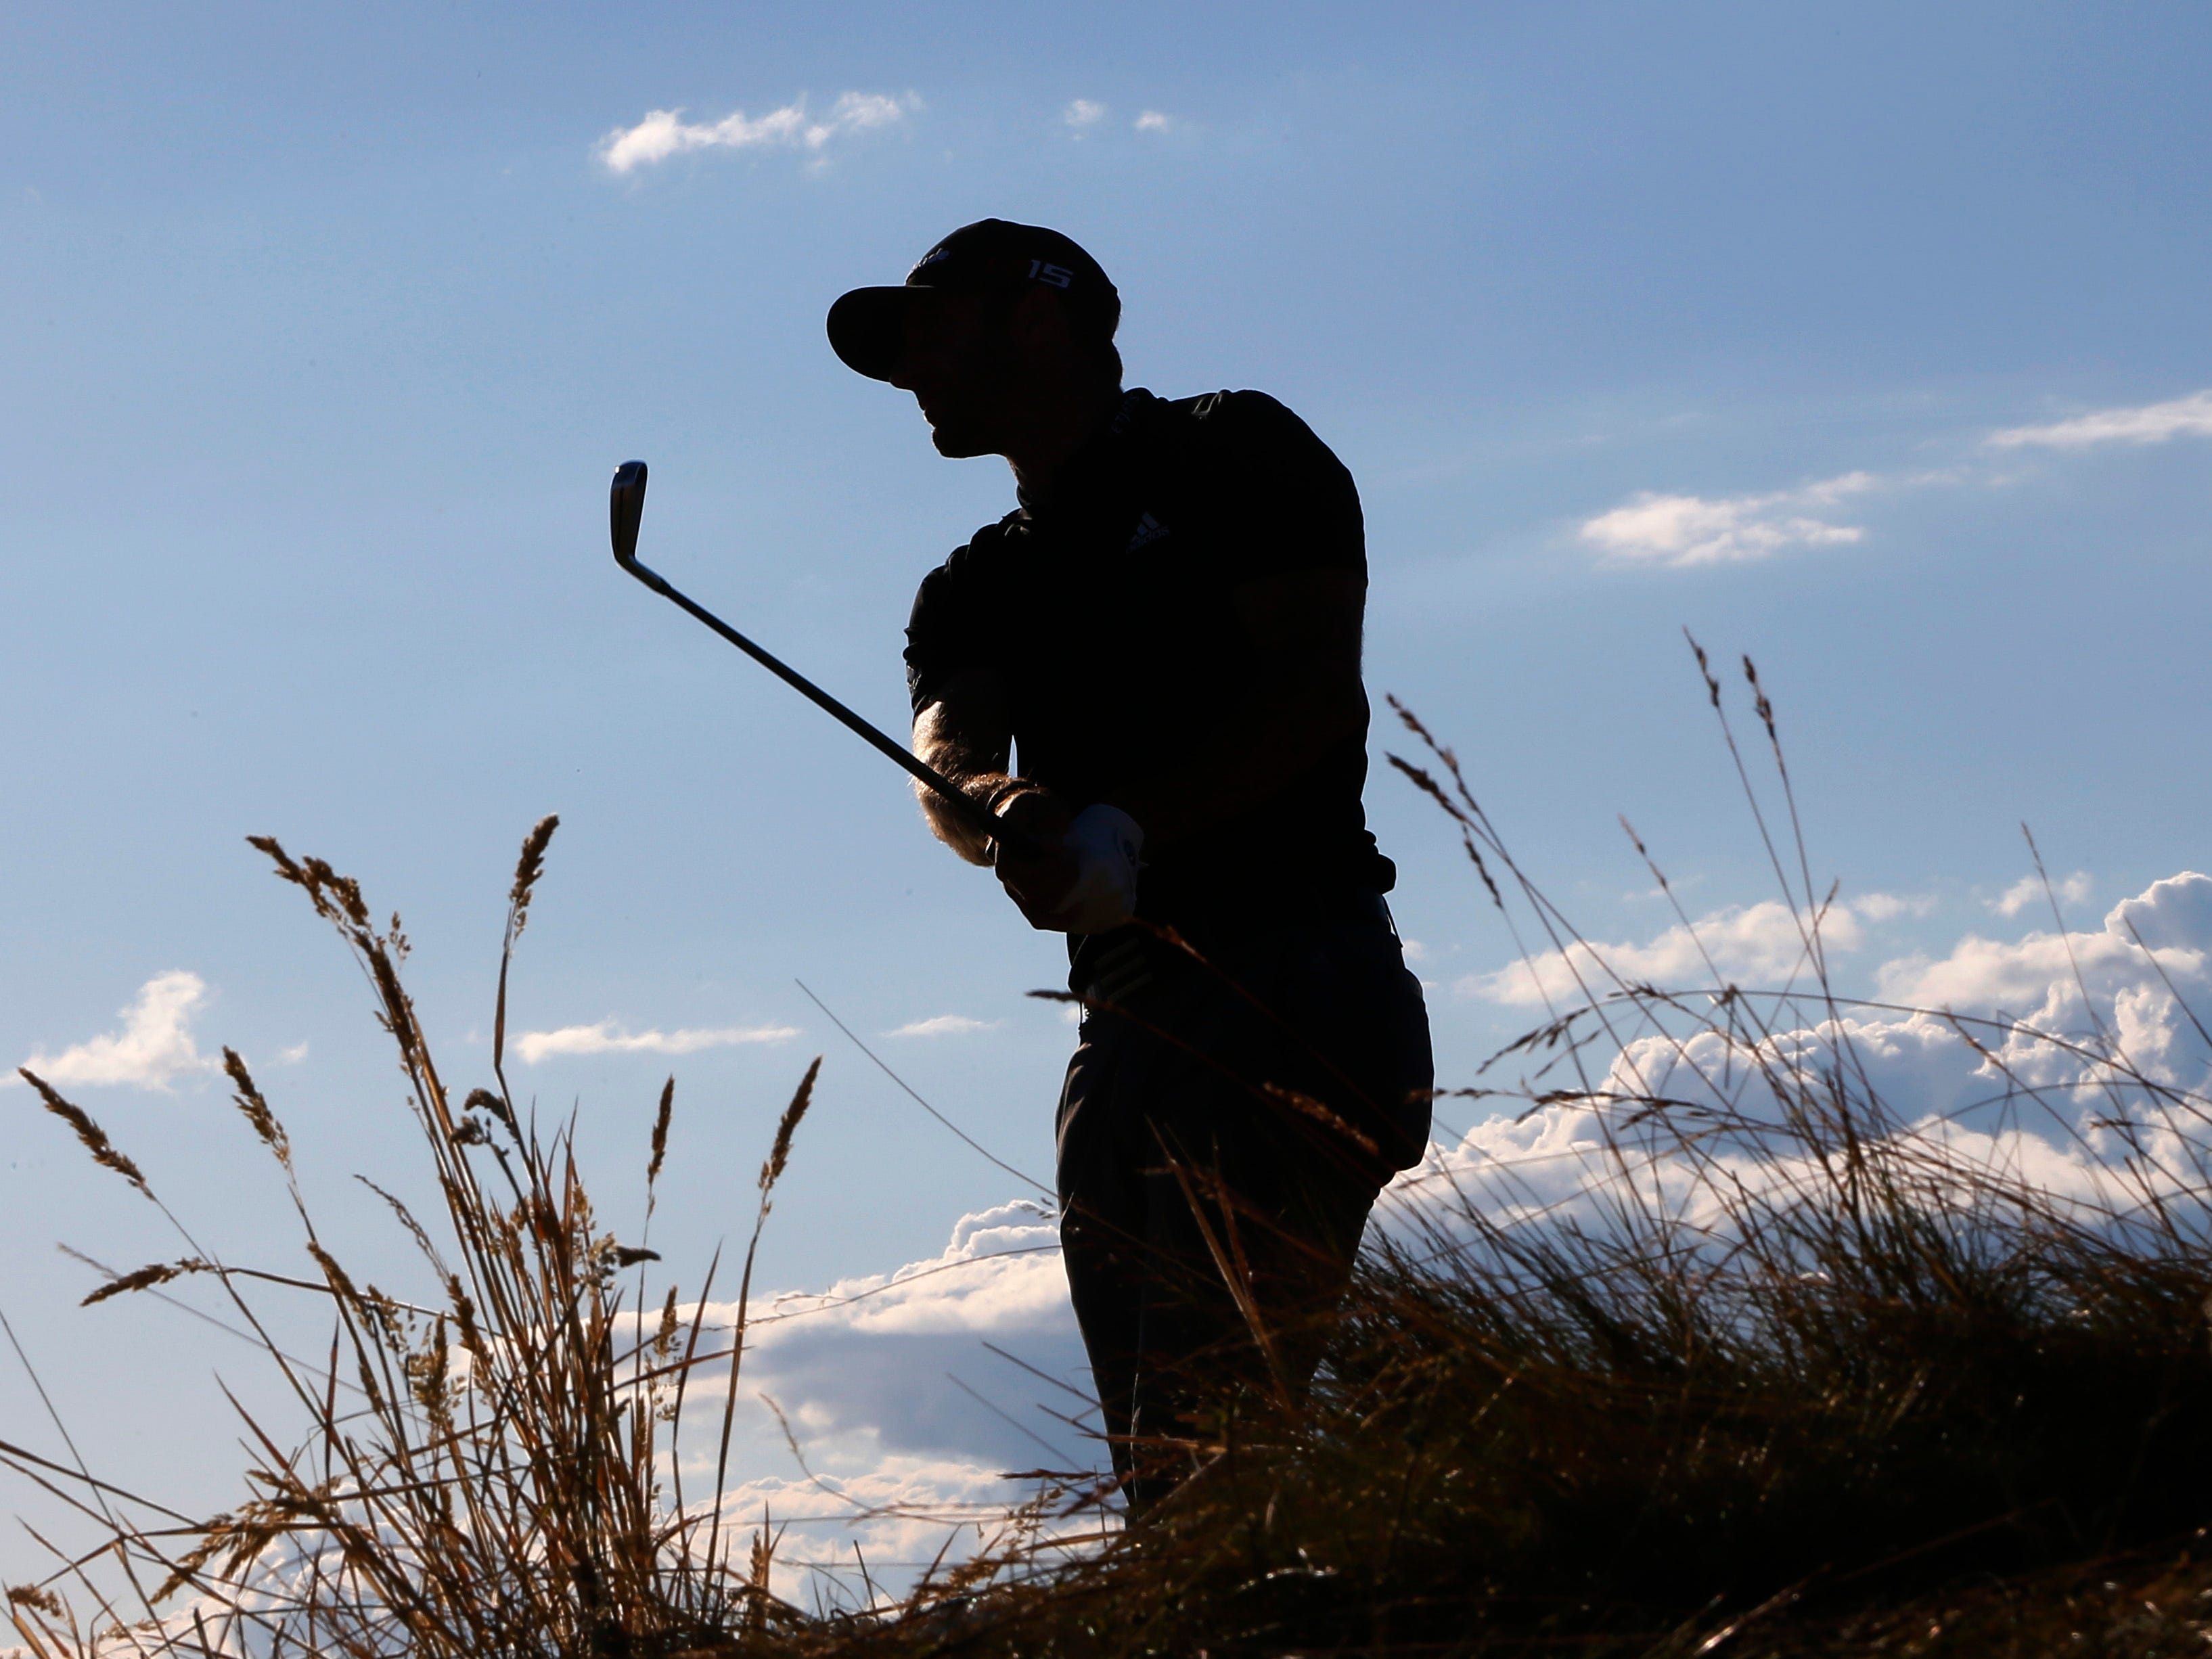 Dustin Johnson watches his tee shot on the 16th hole during the second round of the U.S. Open golf tournament at Chambers Bay on Friday, June 19, 2015 in University Place, Wash. (AP Photo/Matt York)